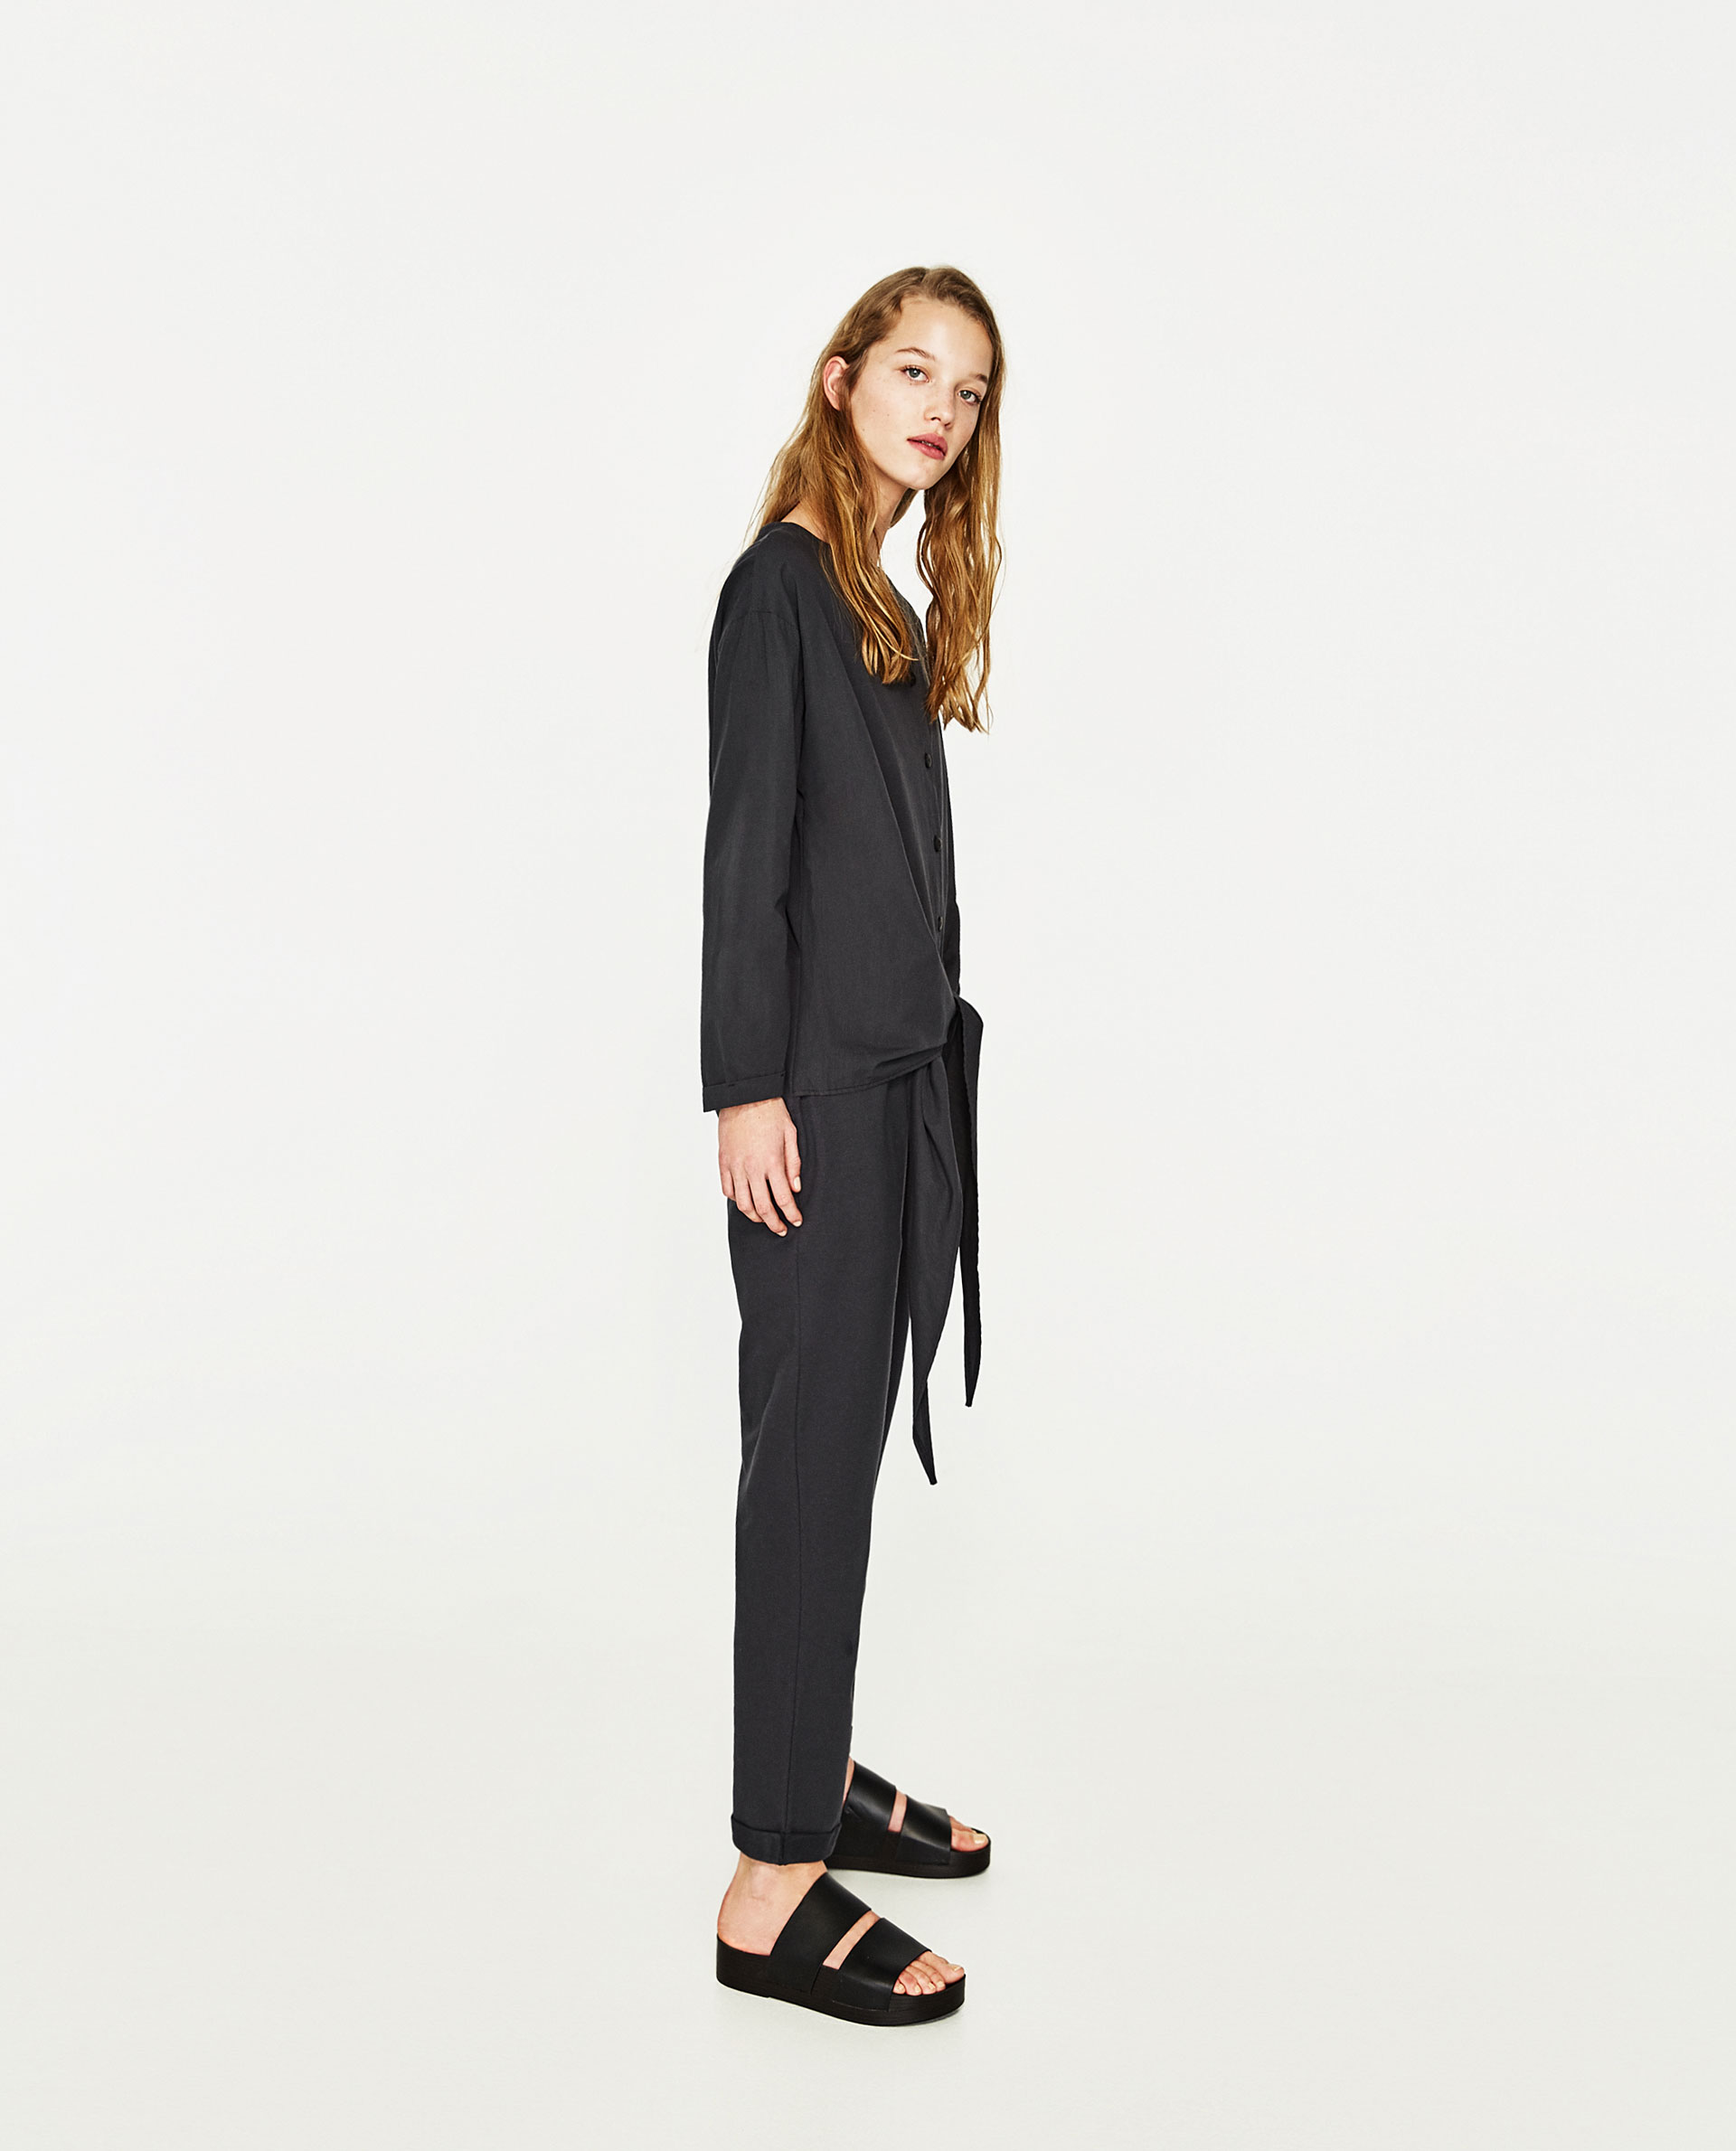 10 Jumpsuits for Spring - Say YesSay Yes